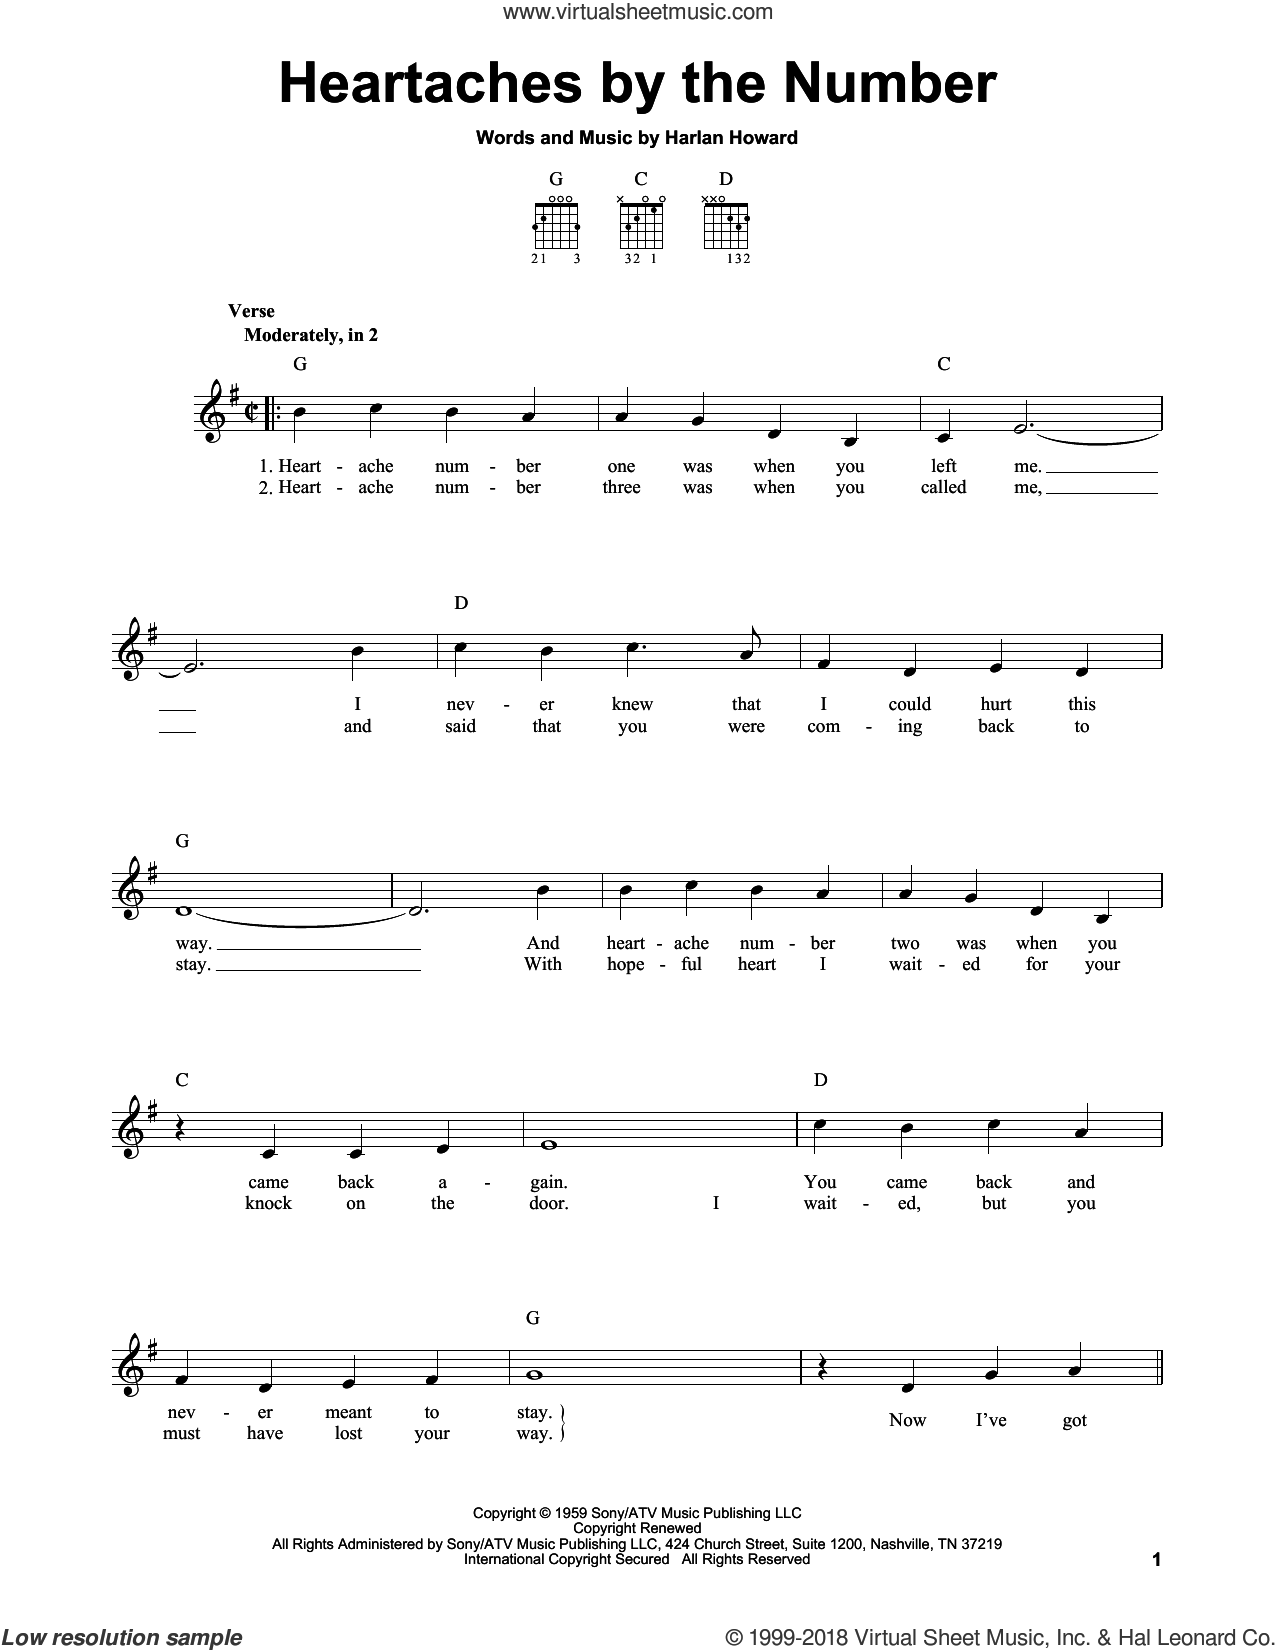 Heartaches By The Number sheet music for guitar solo (chords) by Ray Price, Guy Mitchell and Harlan Howard, easy guitar (chords). Score Image Preview.